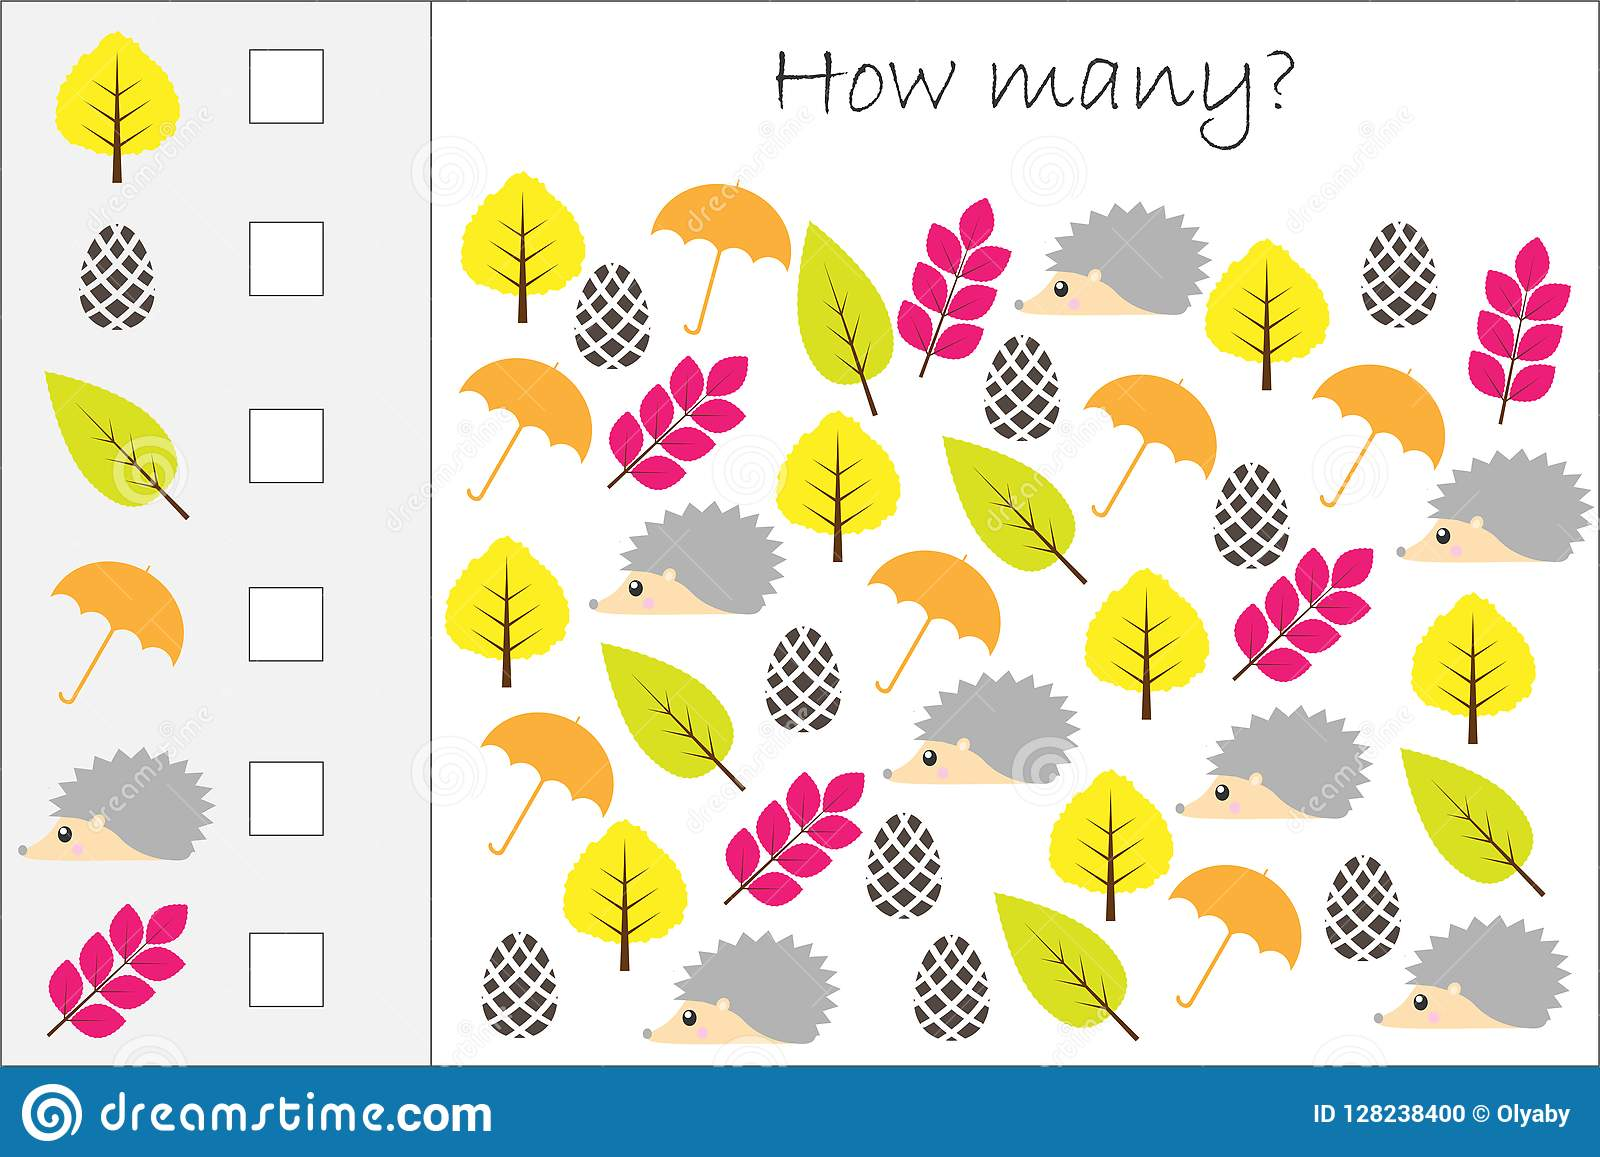 How Many Counting Game With Autumn Pictures For Kids